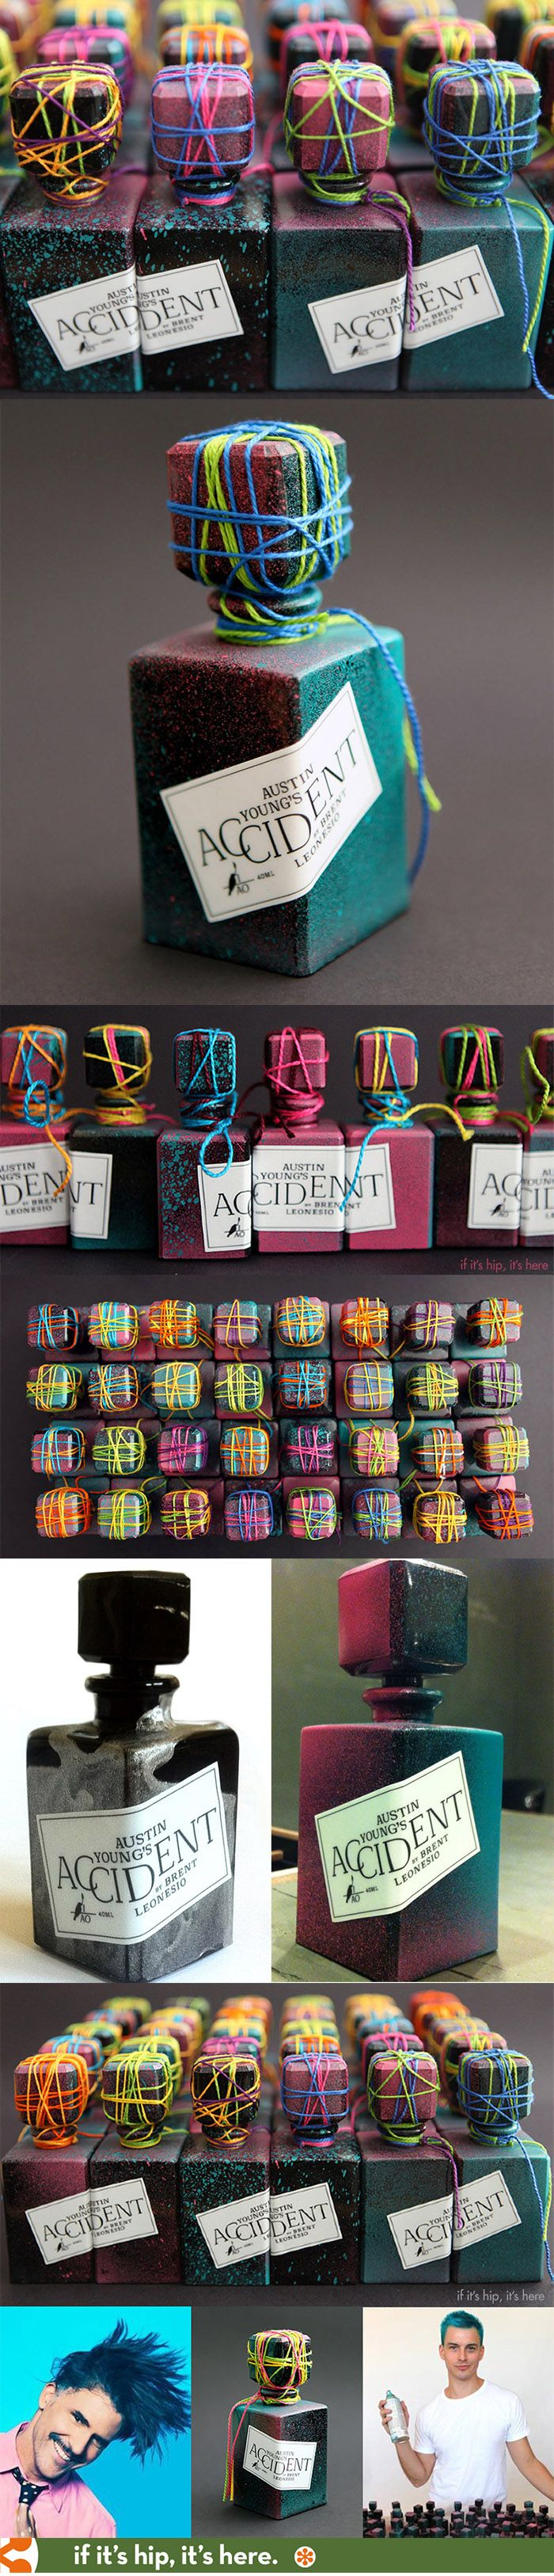 Austin Young's art perfume, Accident, has each bottle individually and uniquely packaged, numbered and signed. PD